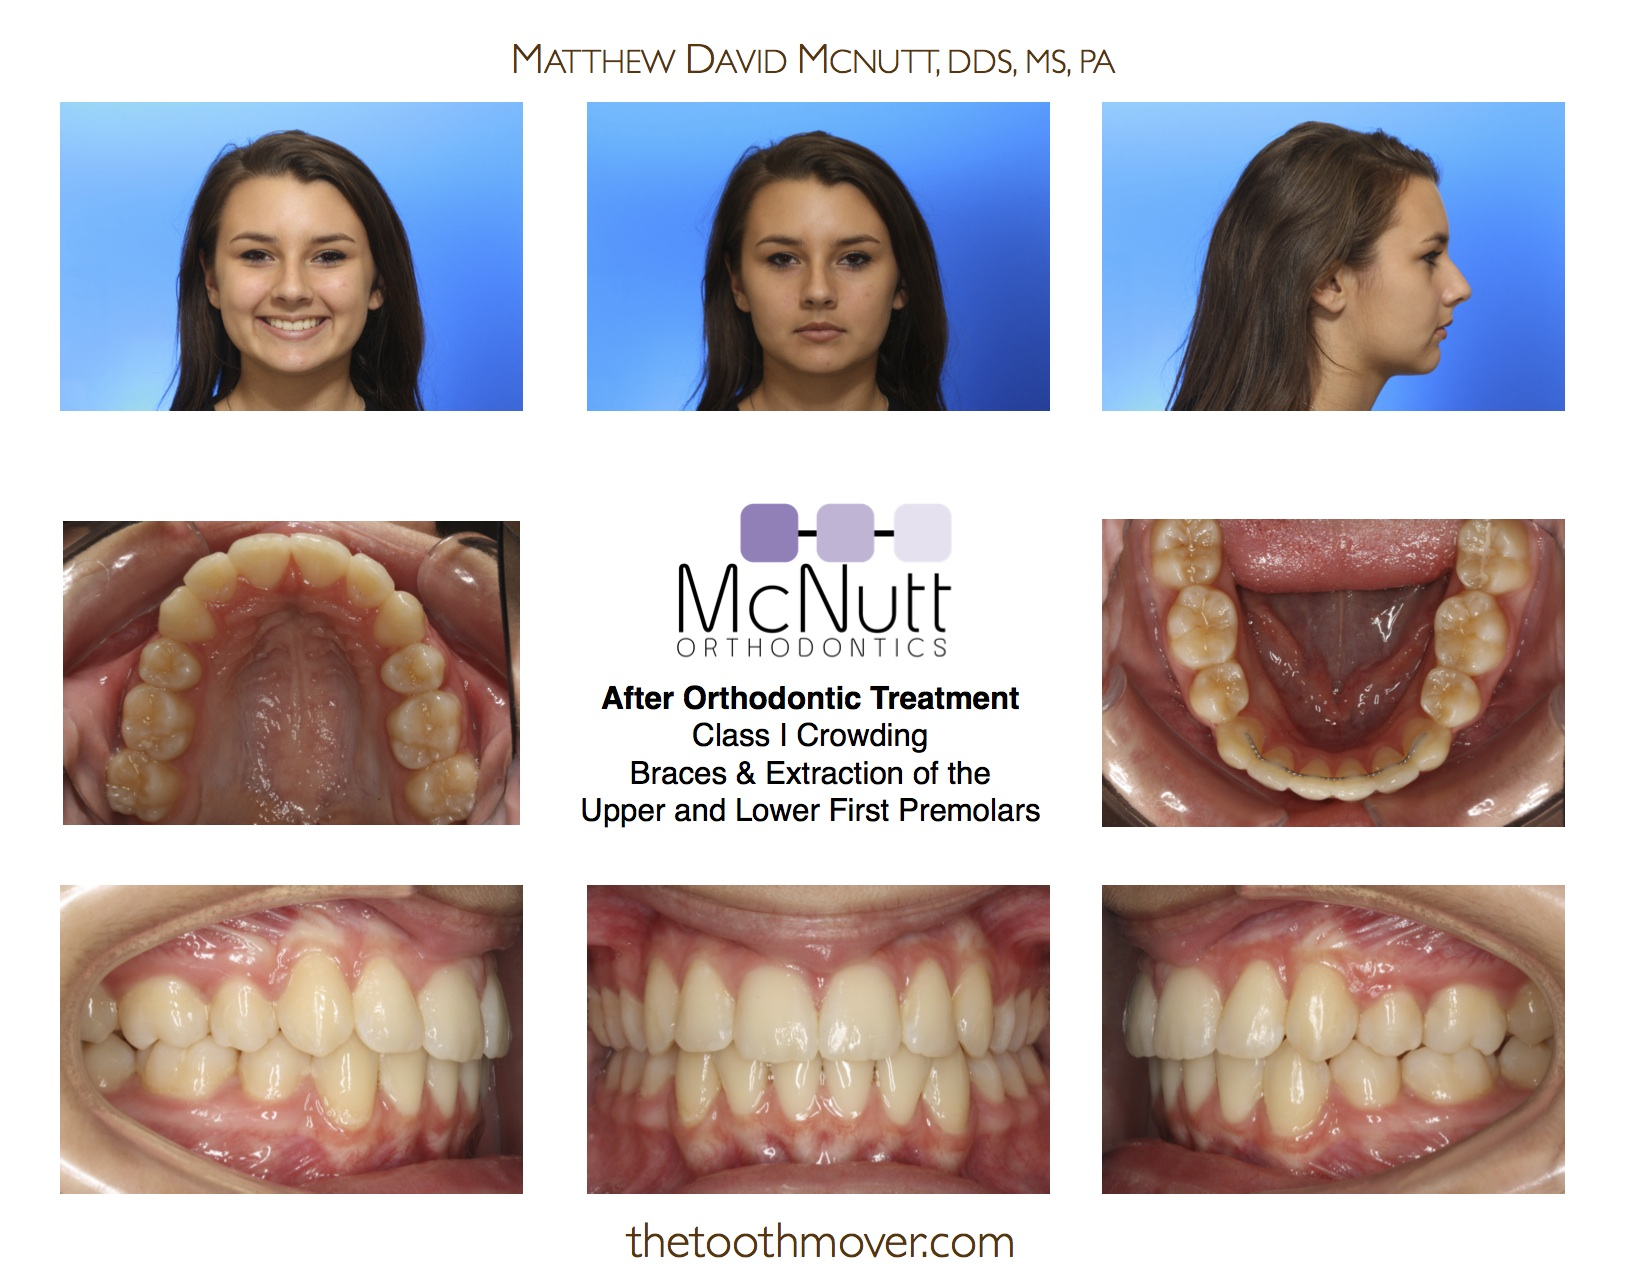 Before and after braces with extractions